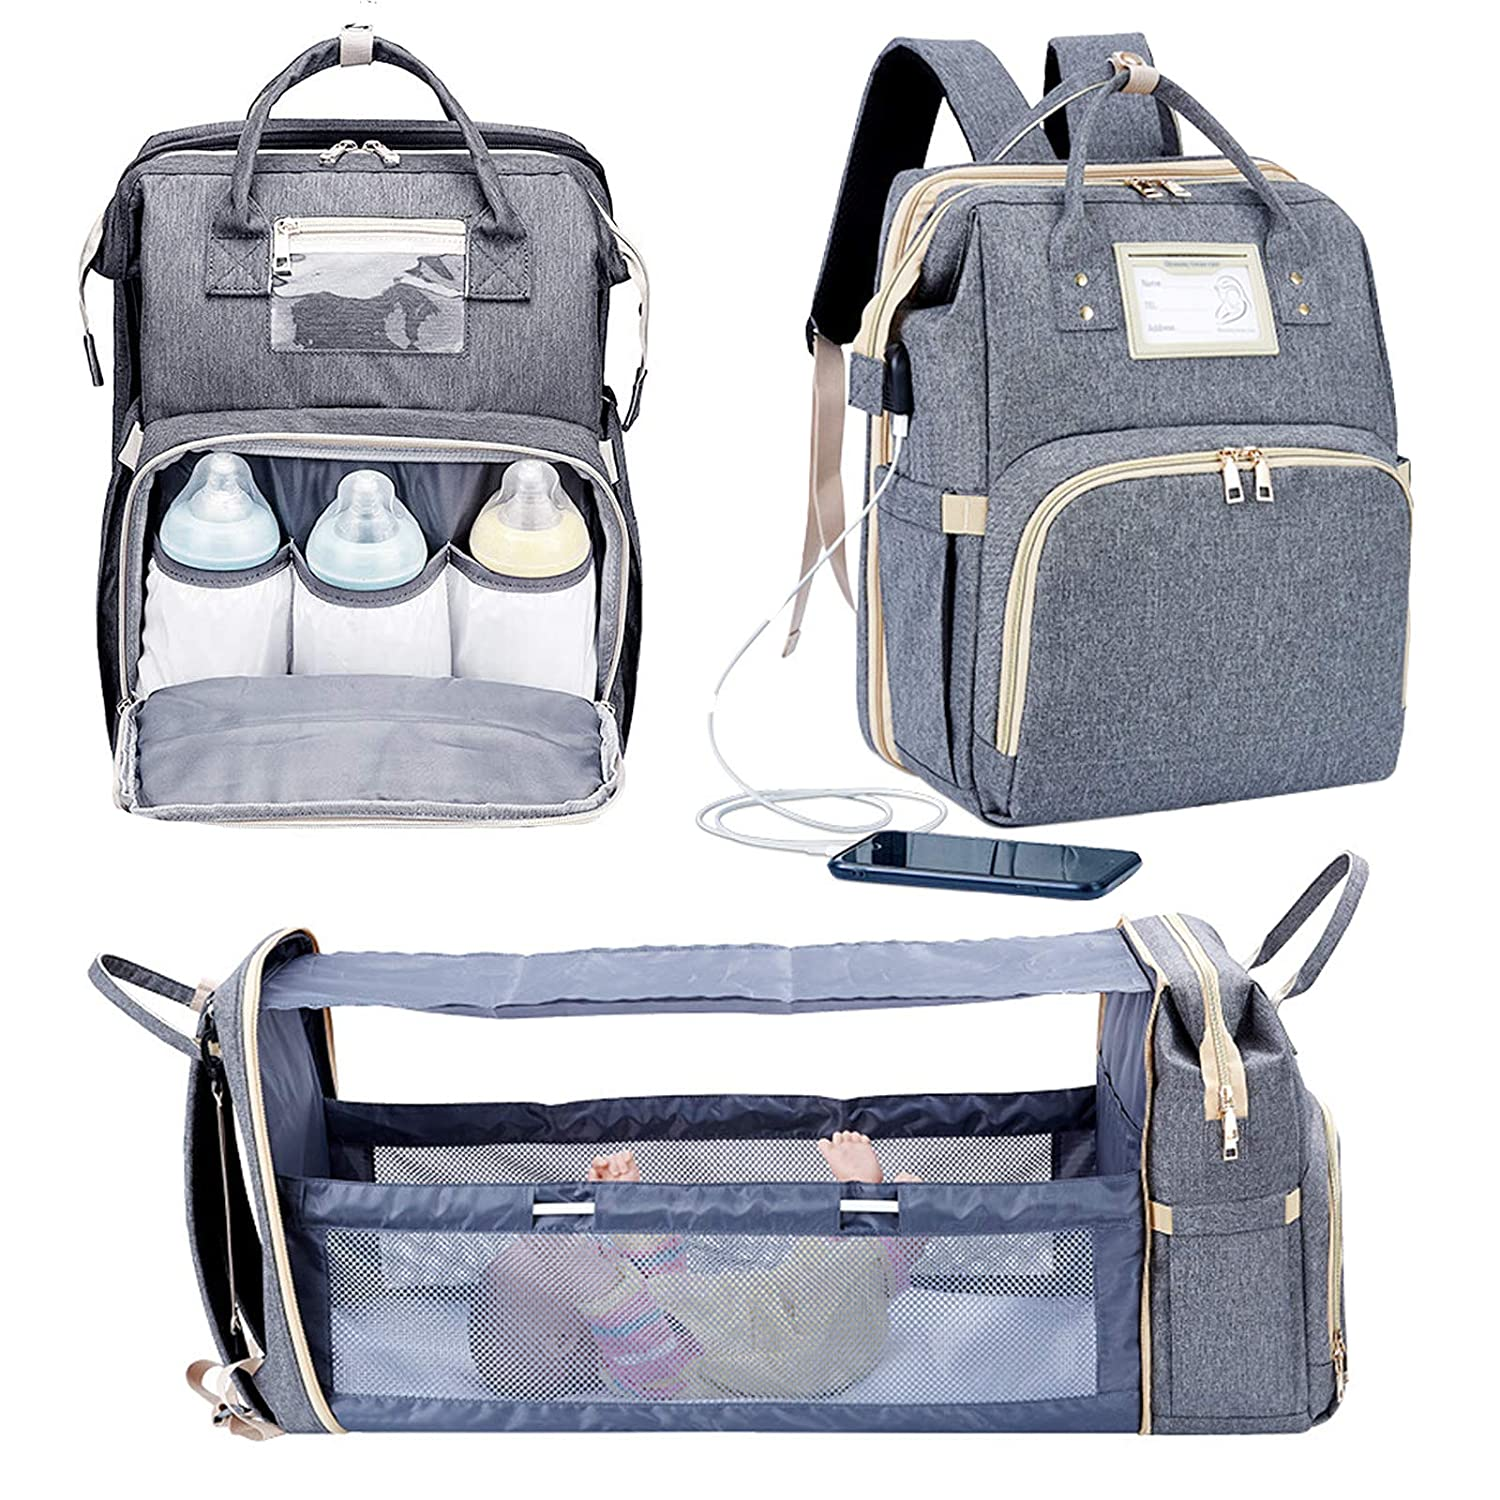 WASHWOW diaper bag backpack 3 in 1 baby boy with changing table, waterproof baby bag, travel bassinet with USB charging port and sun visor (gray)